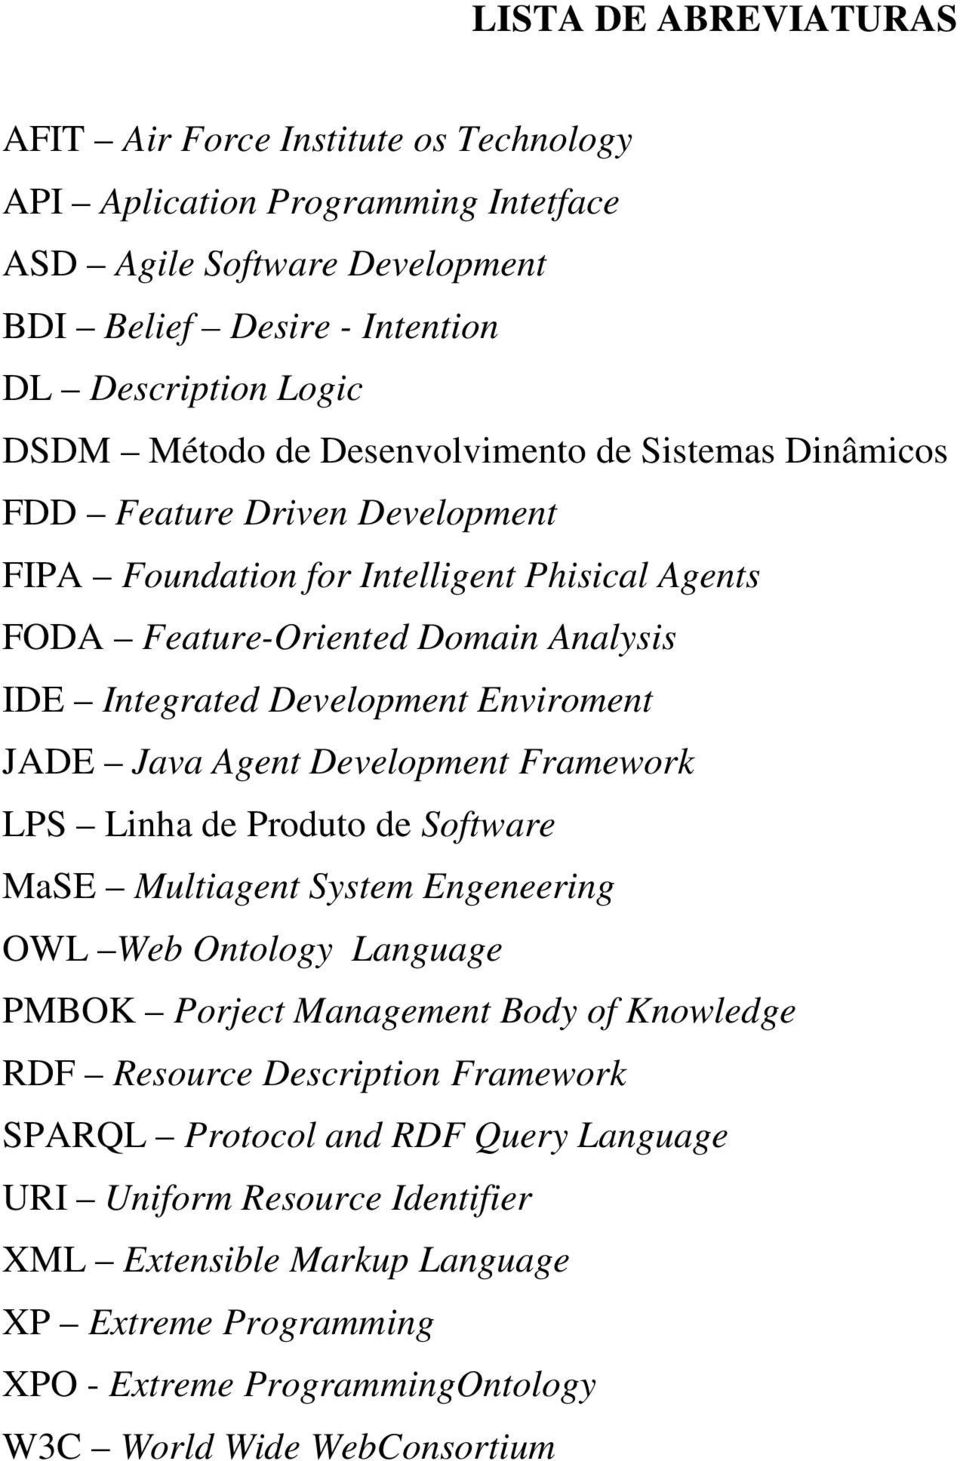 JADE Java Agent Development Framework LPS Linha de Produto de Software MaSE Multiagent System Engeneering OWL Web Ontology Language PMBOK Porject Management Body of Knowledge RDF Resource